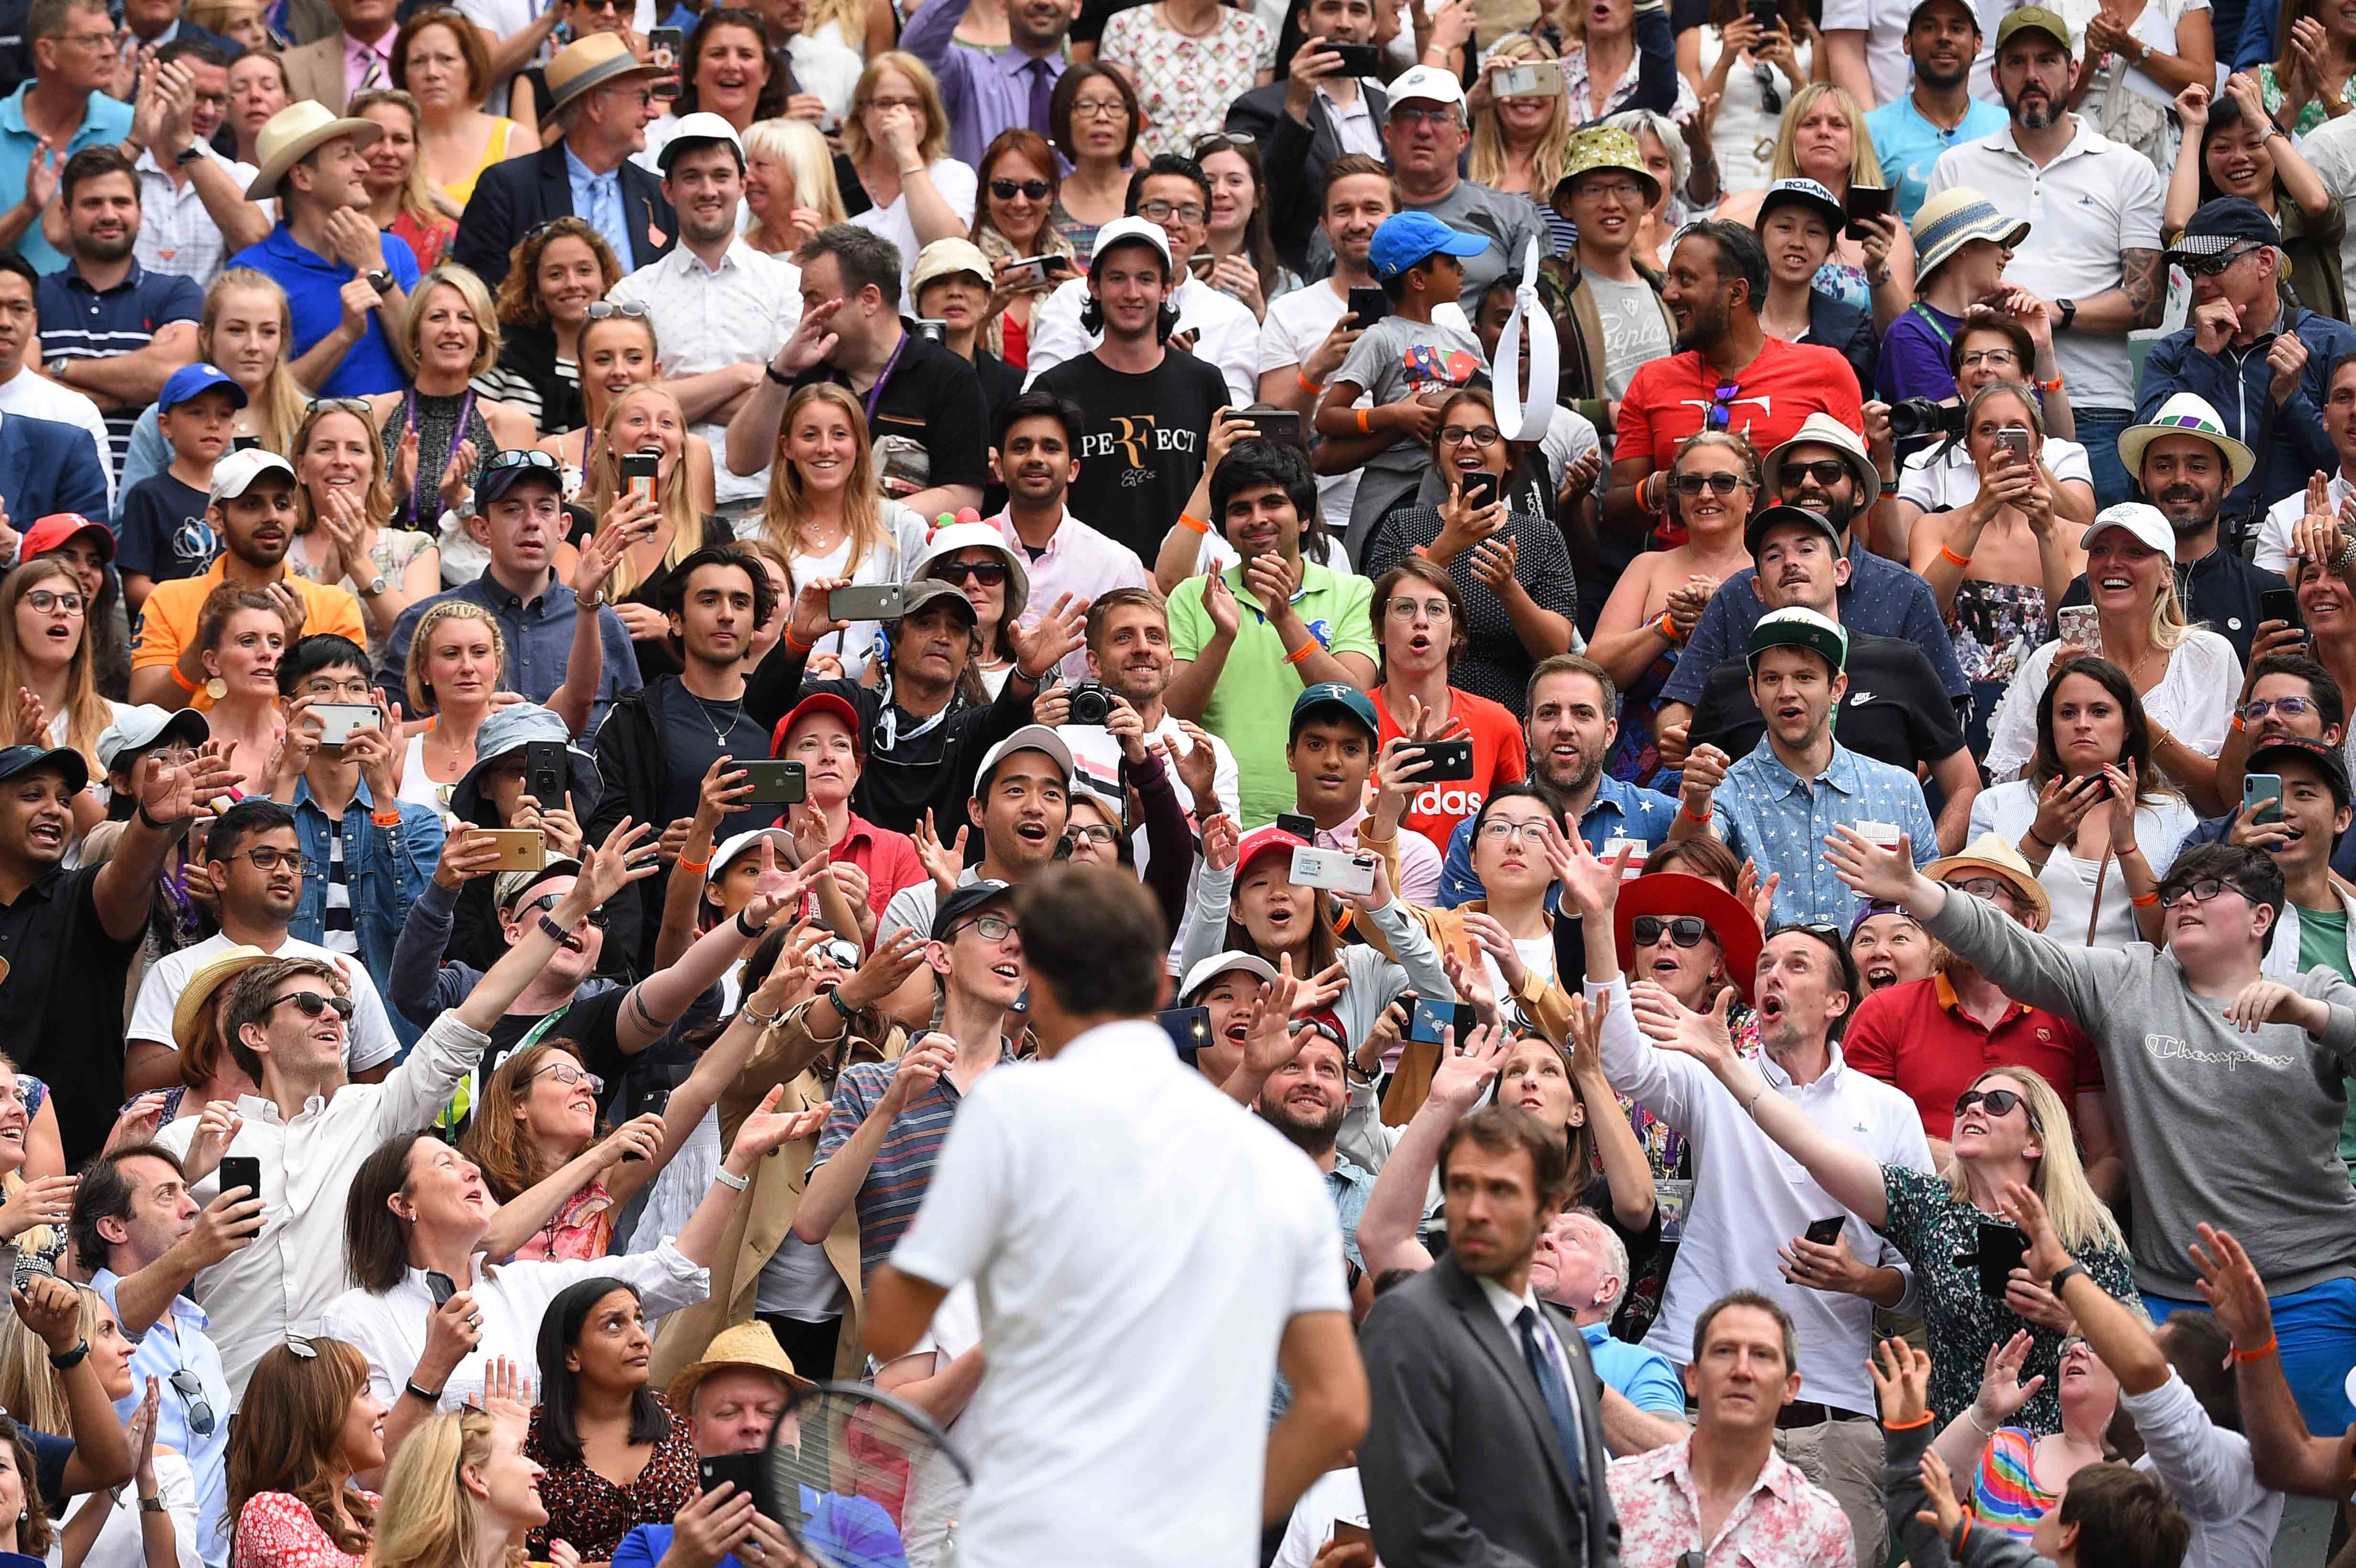 Astonished crowd as Roger Federer throws his headband to them at Wimbledon 2019.